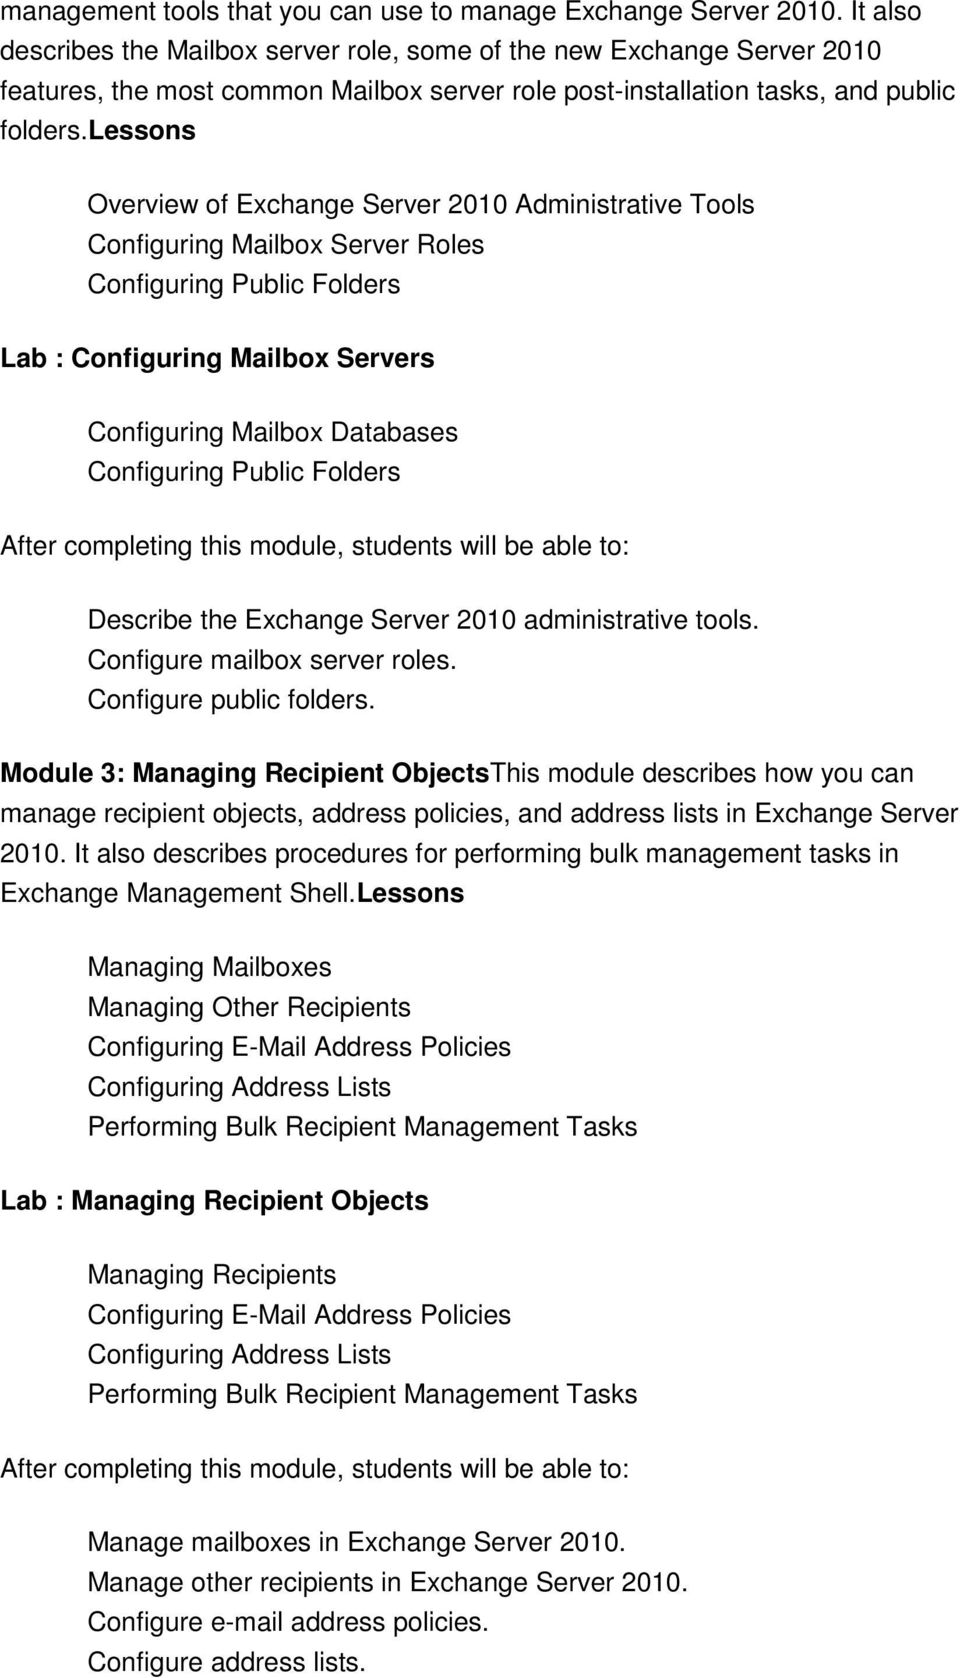 lessons Overview of Exchange Server 2010 Administrative Tools Configuring Mailbox Server Roles Configuring Public Folders Lab : Configuring Mailbox Servers Configuring Mailbox Databases Configuring